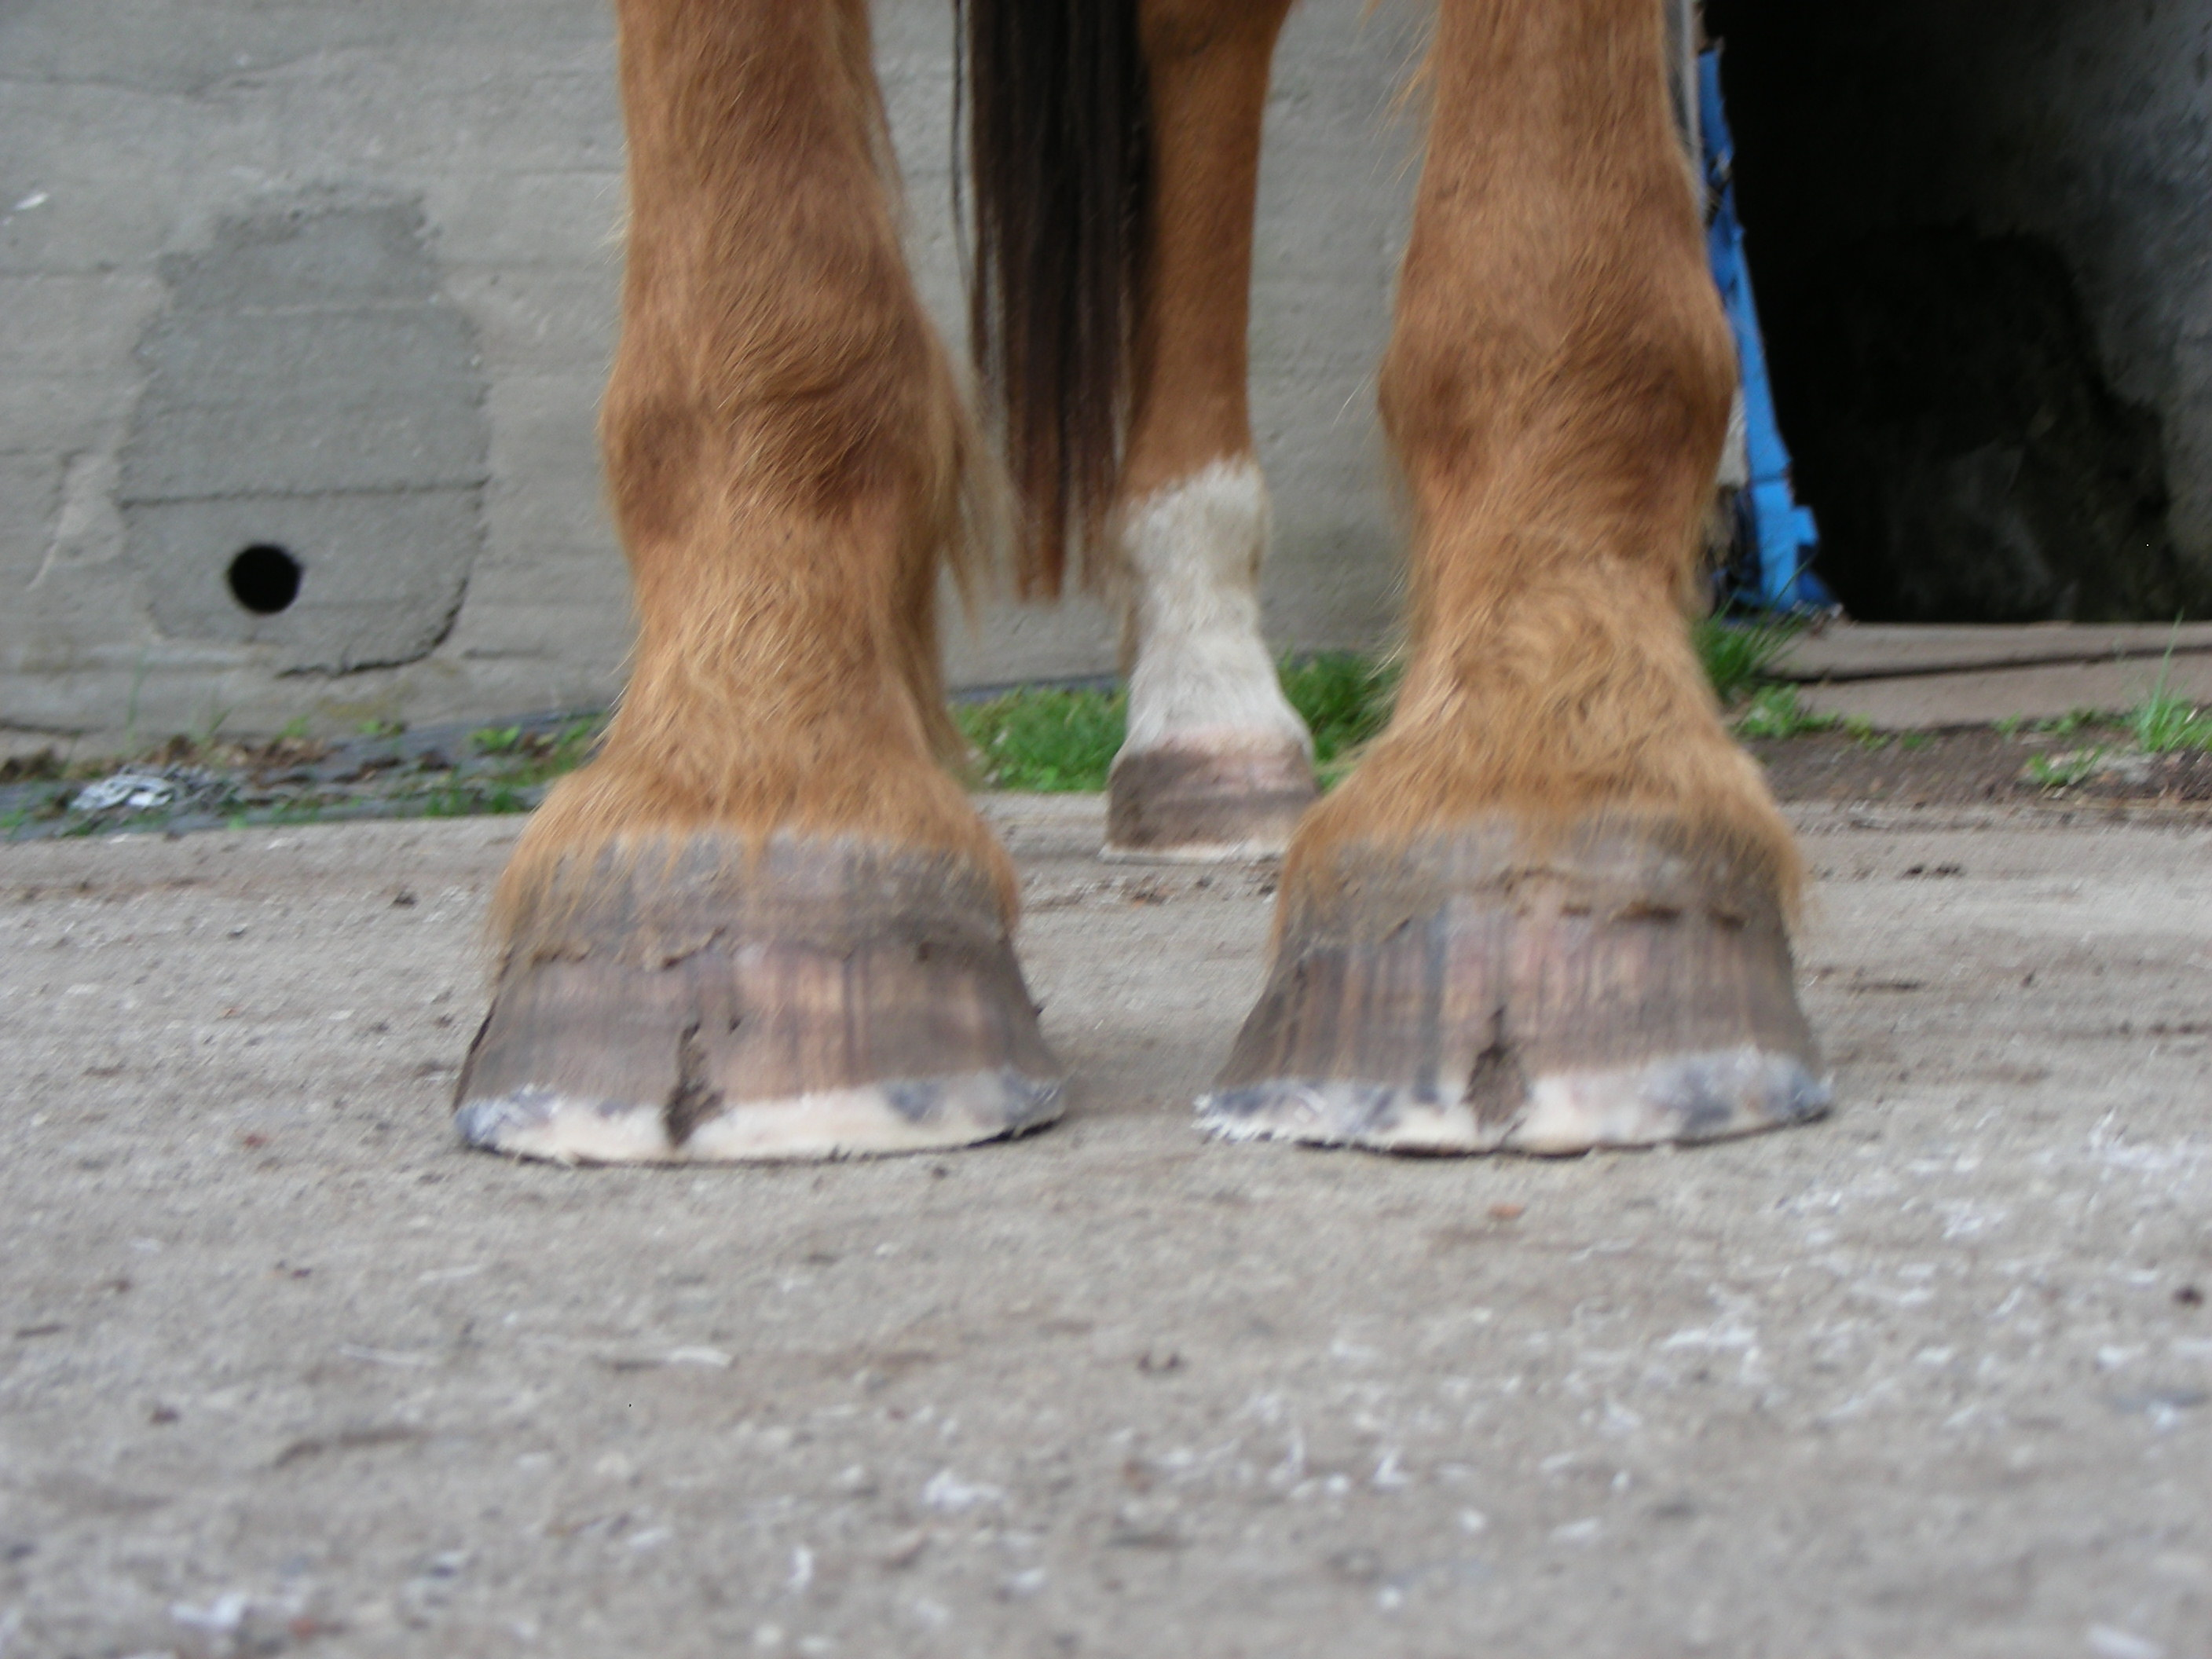 Severe Medial Lateral Imbalance Cracks Barefoot Hoofcare